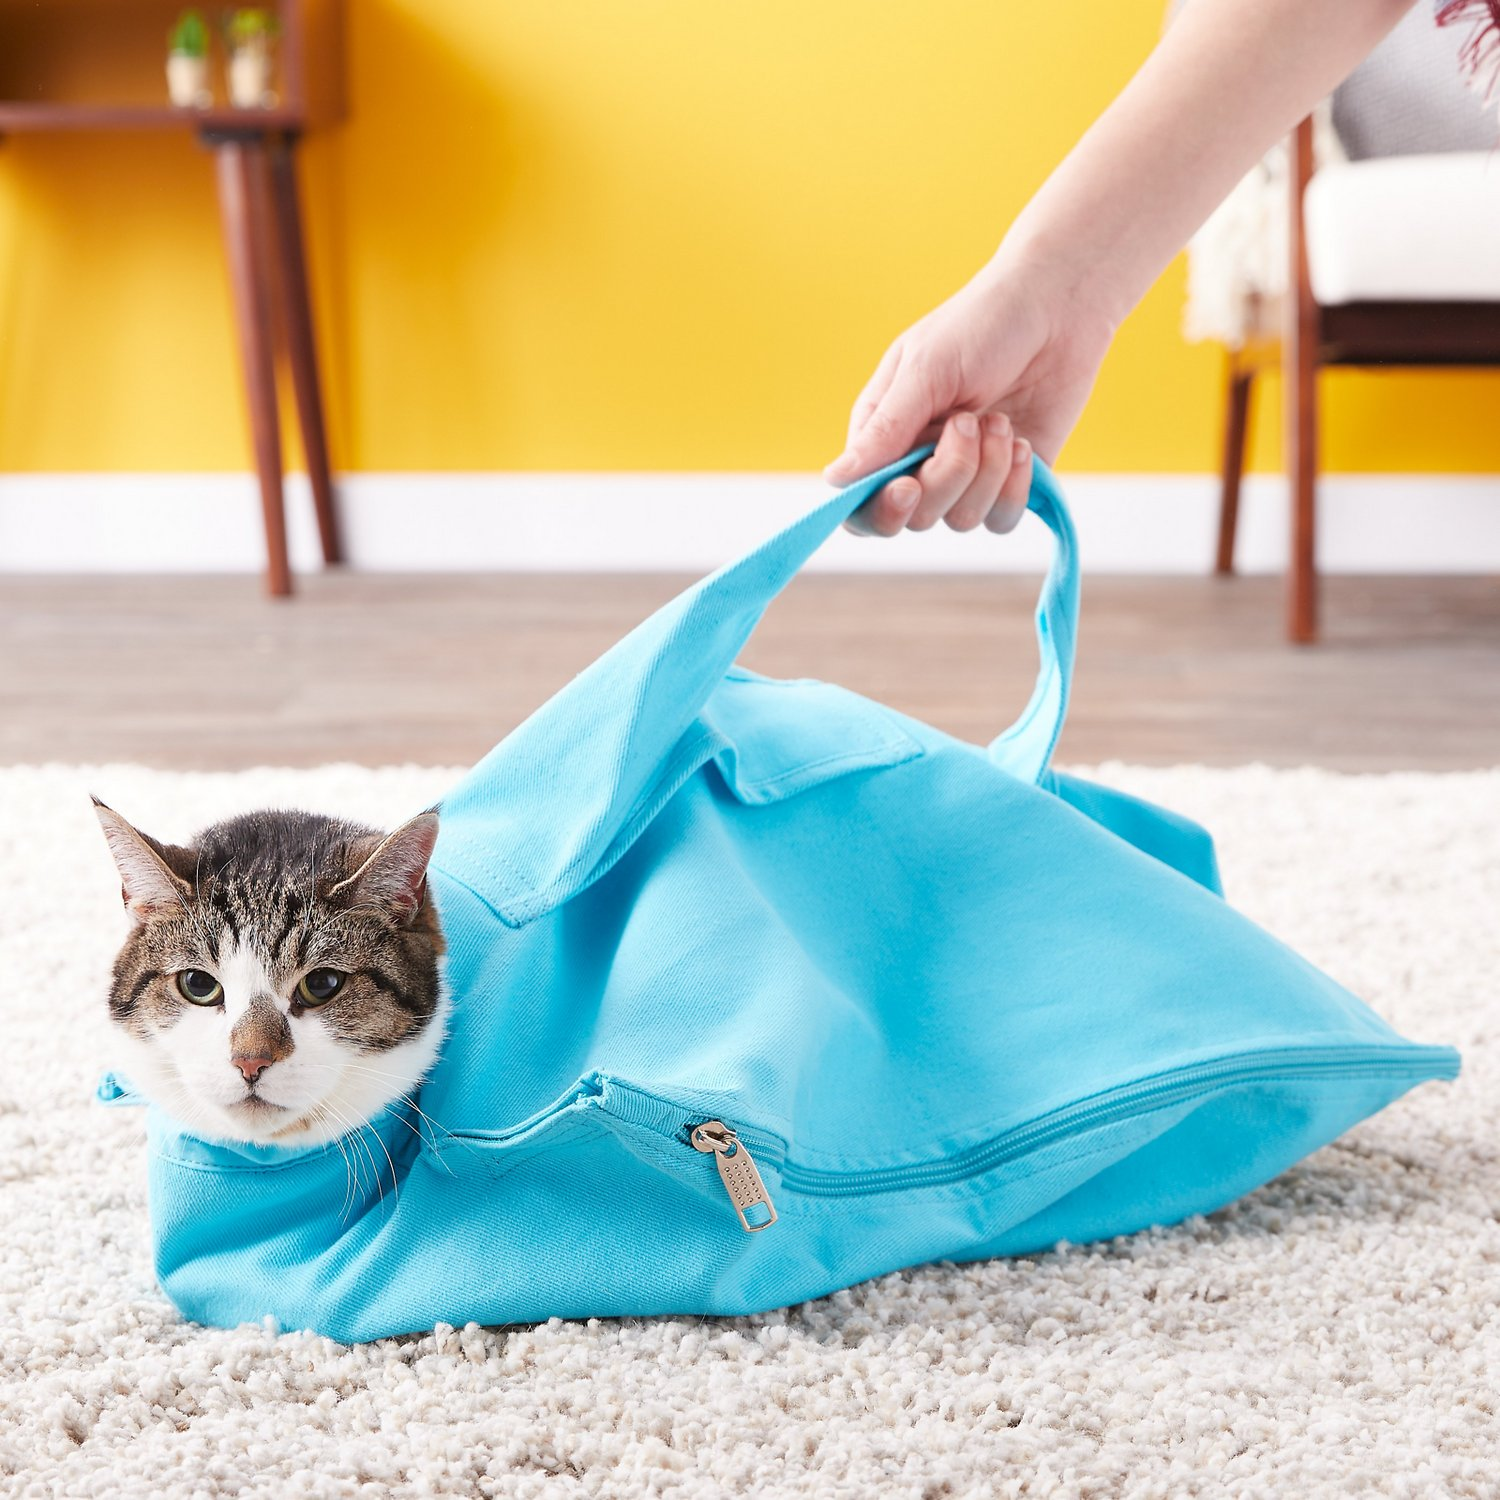 80a5d34da2c Cat-in-the-bag E-Z-Zip Cat Carrier, Light Blue, Small - Chewy.com